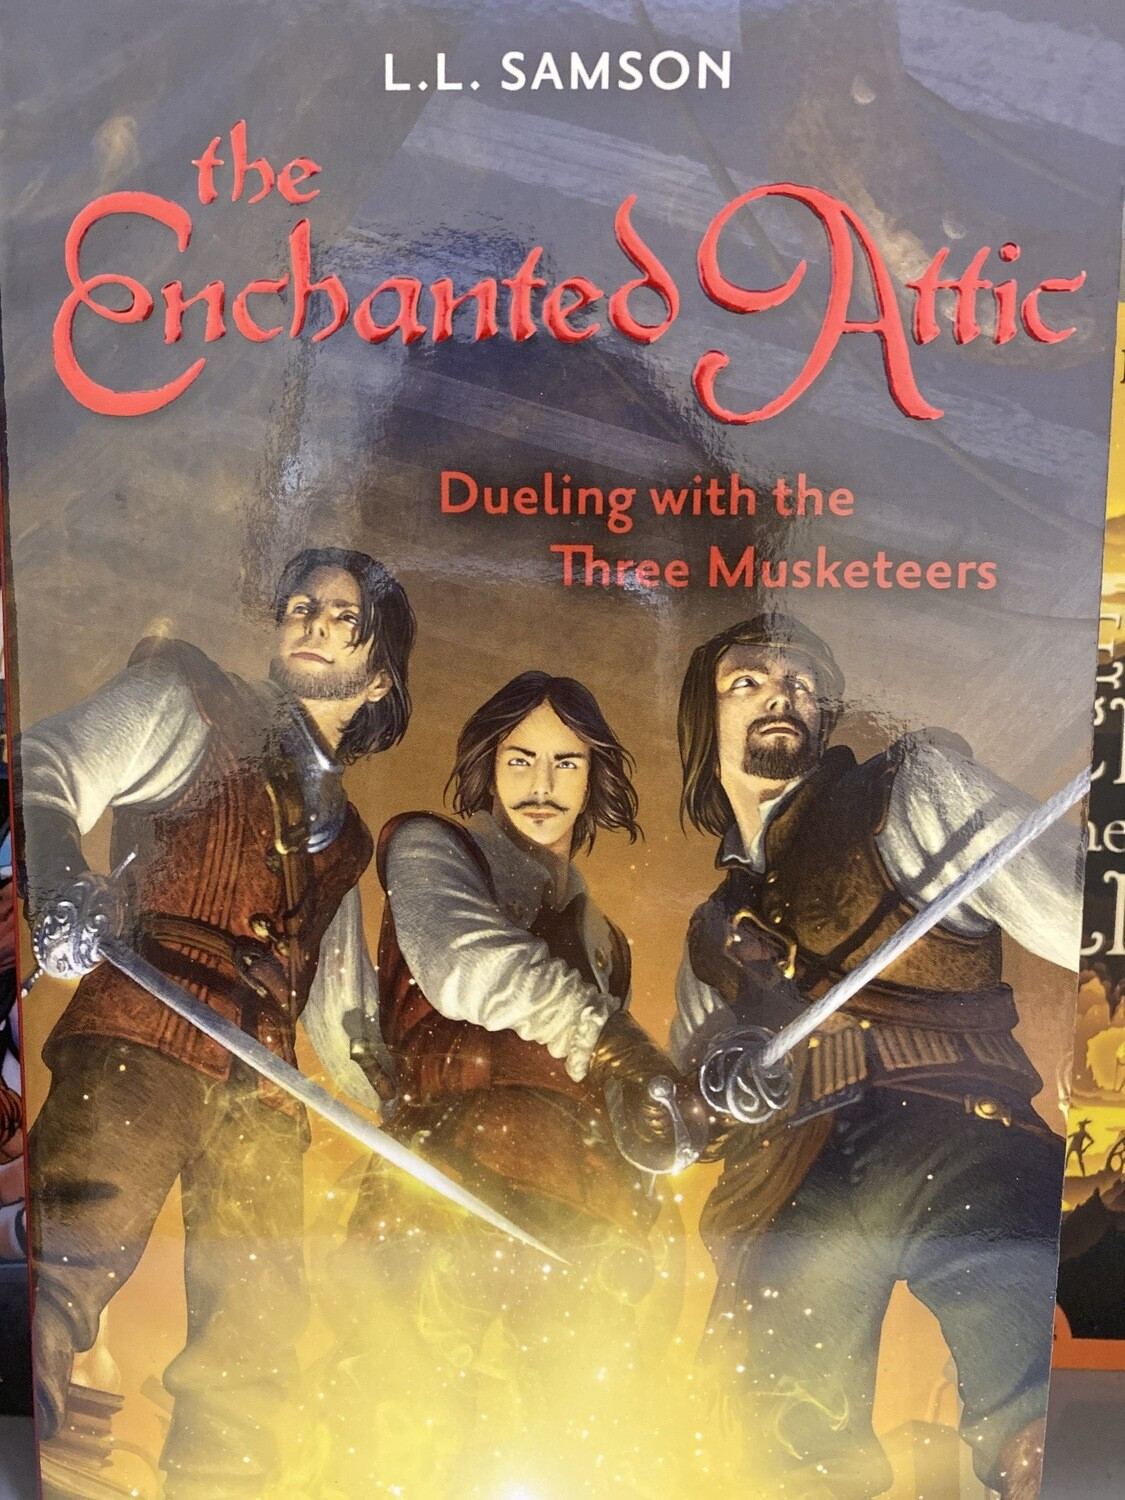 SAMSON, The Enchanted Attic, Dueling With the three Musketeers